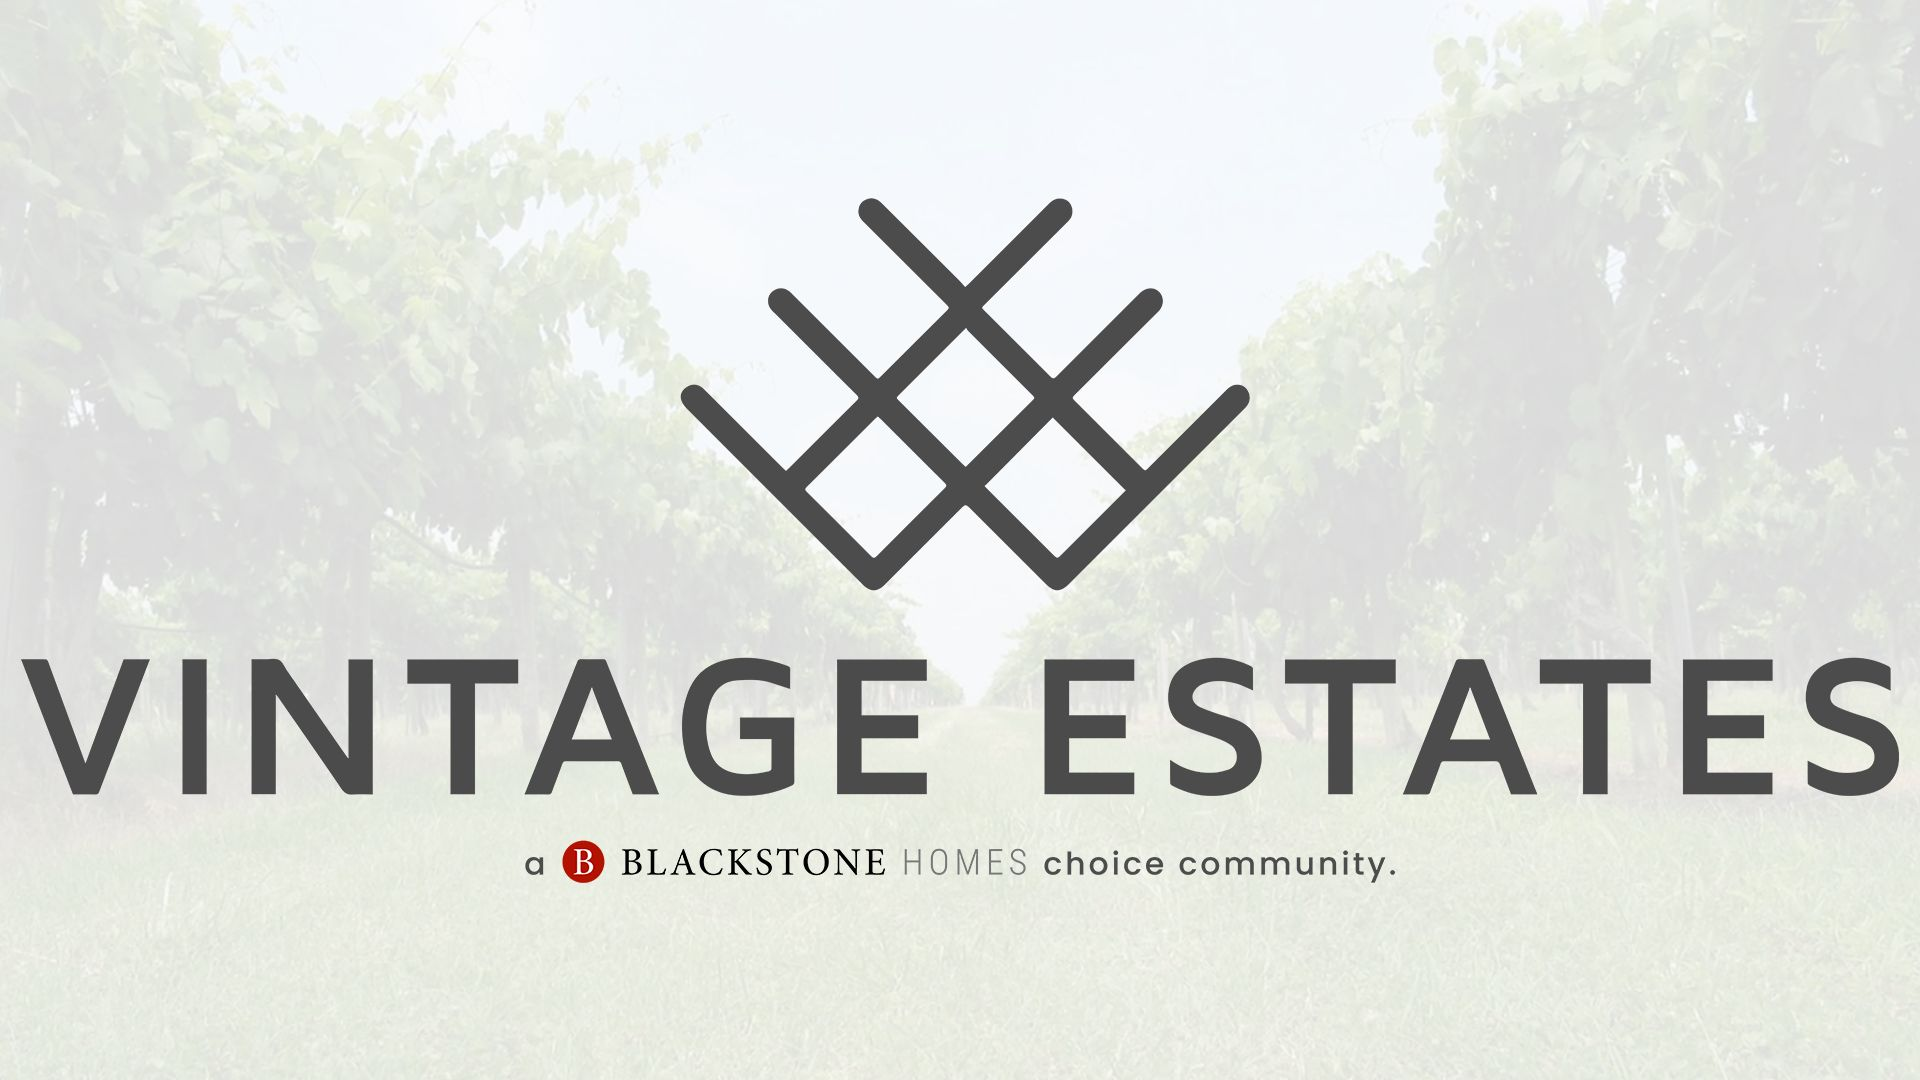 Vintage Estates:by Blackstone Homes